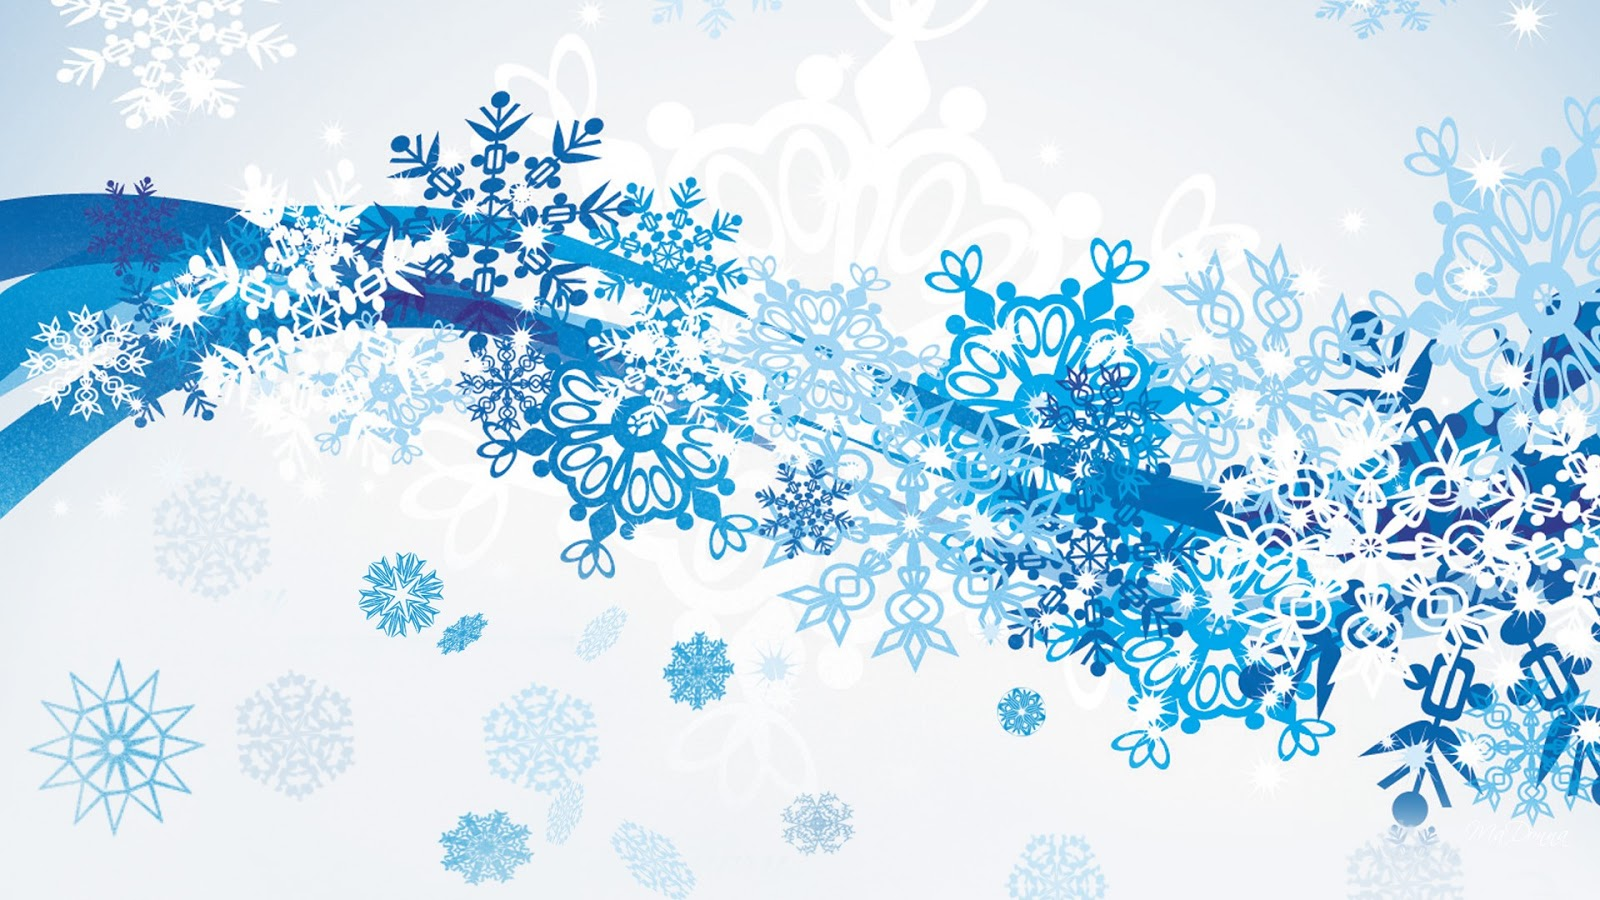 Live Your Life: Cold Winter Blast.